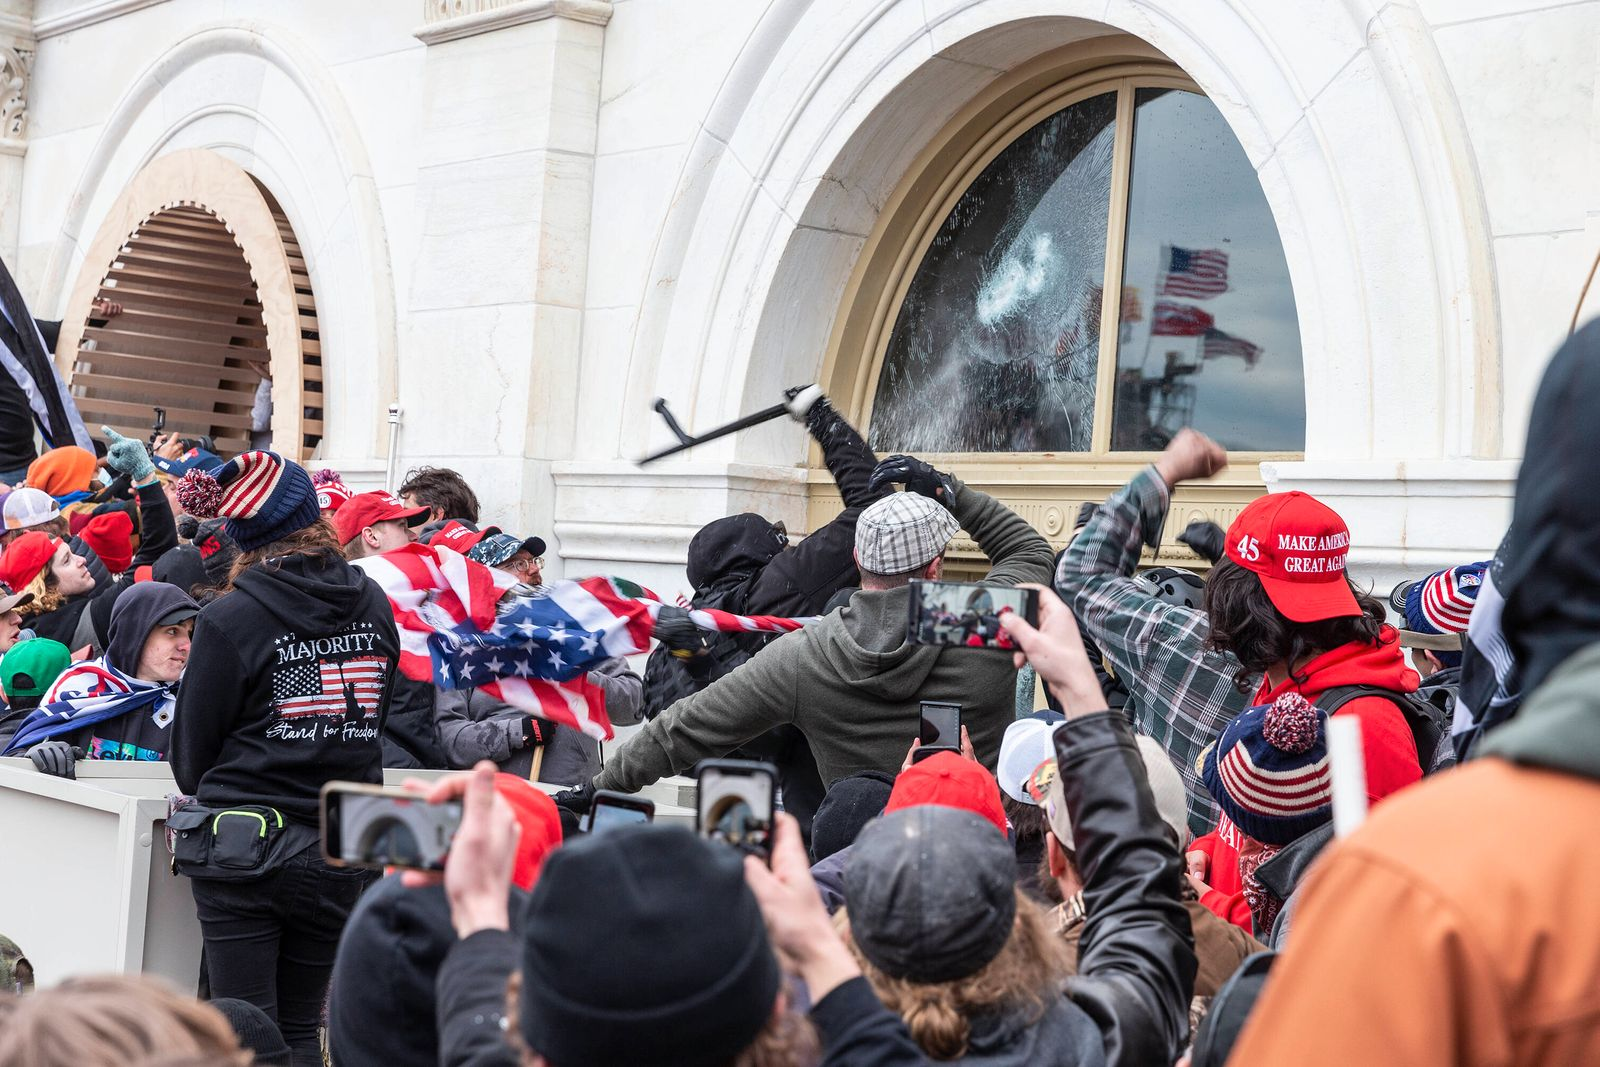 Pro-Trump Riot in Washington DC Pro-Trump protesters break windows of the Capitol building. Rioters broke windows and b